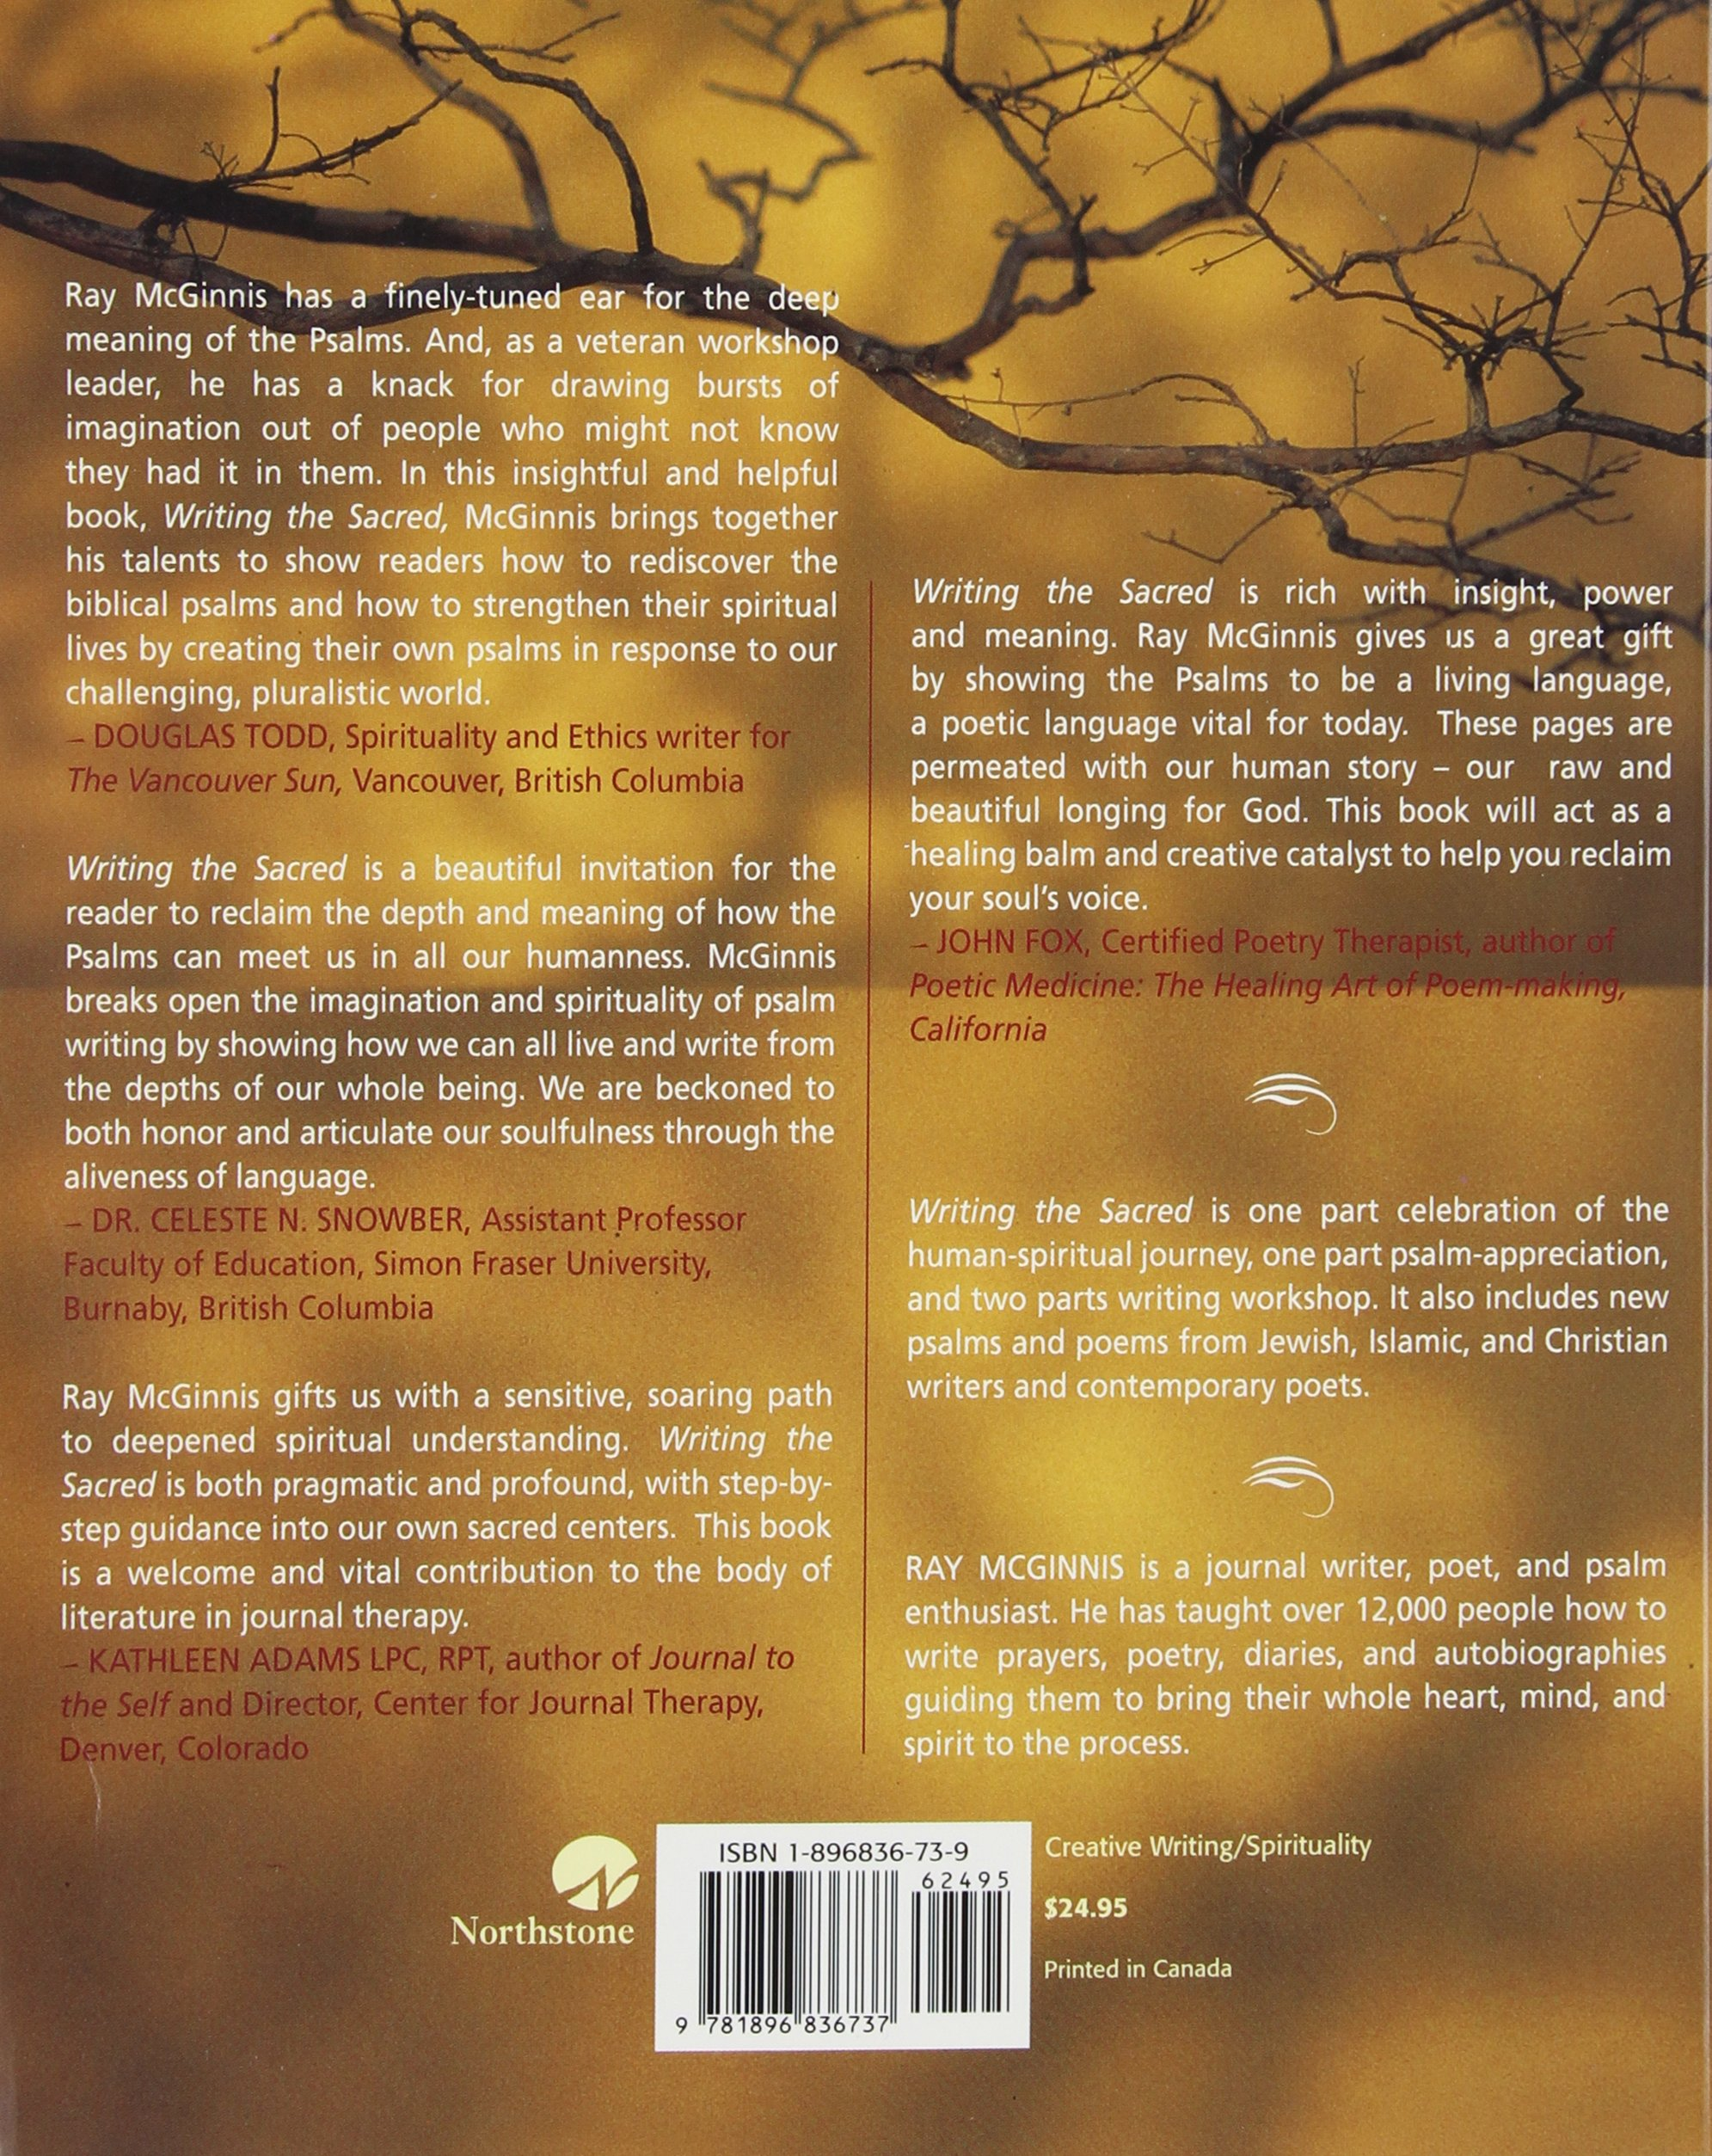 Writing the Sacred: A Psalm-inspired Path to Appreciating and Writing Sacred Poetry by Northstone